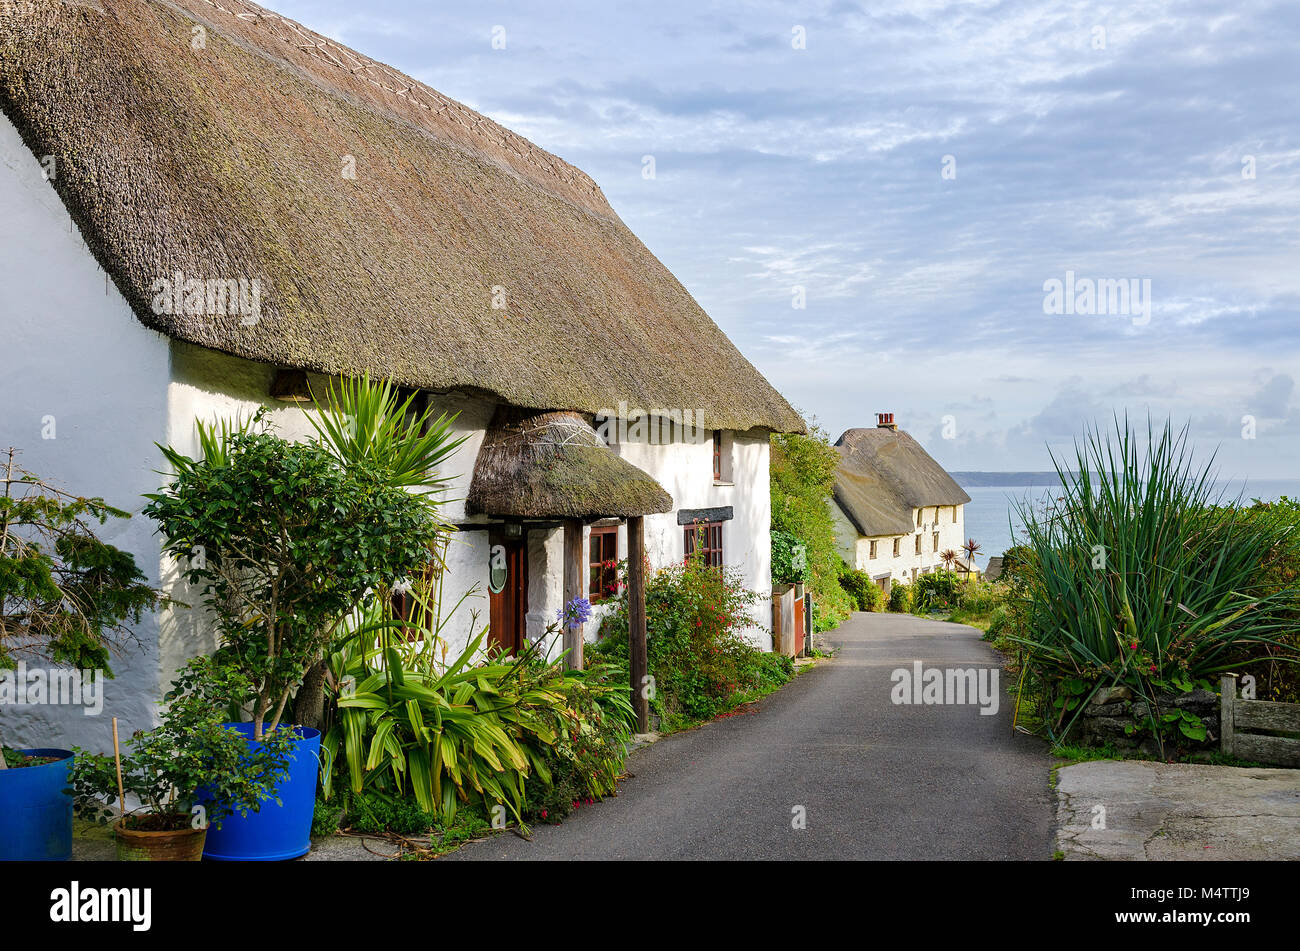 thatched cottages near church cove on the lizard peninsular in cornwall, england, britain, uk. - Stock Image